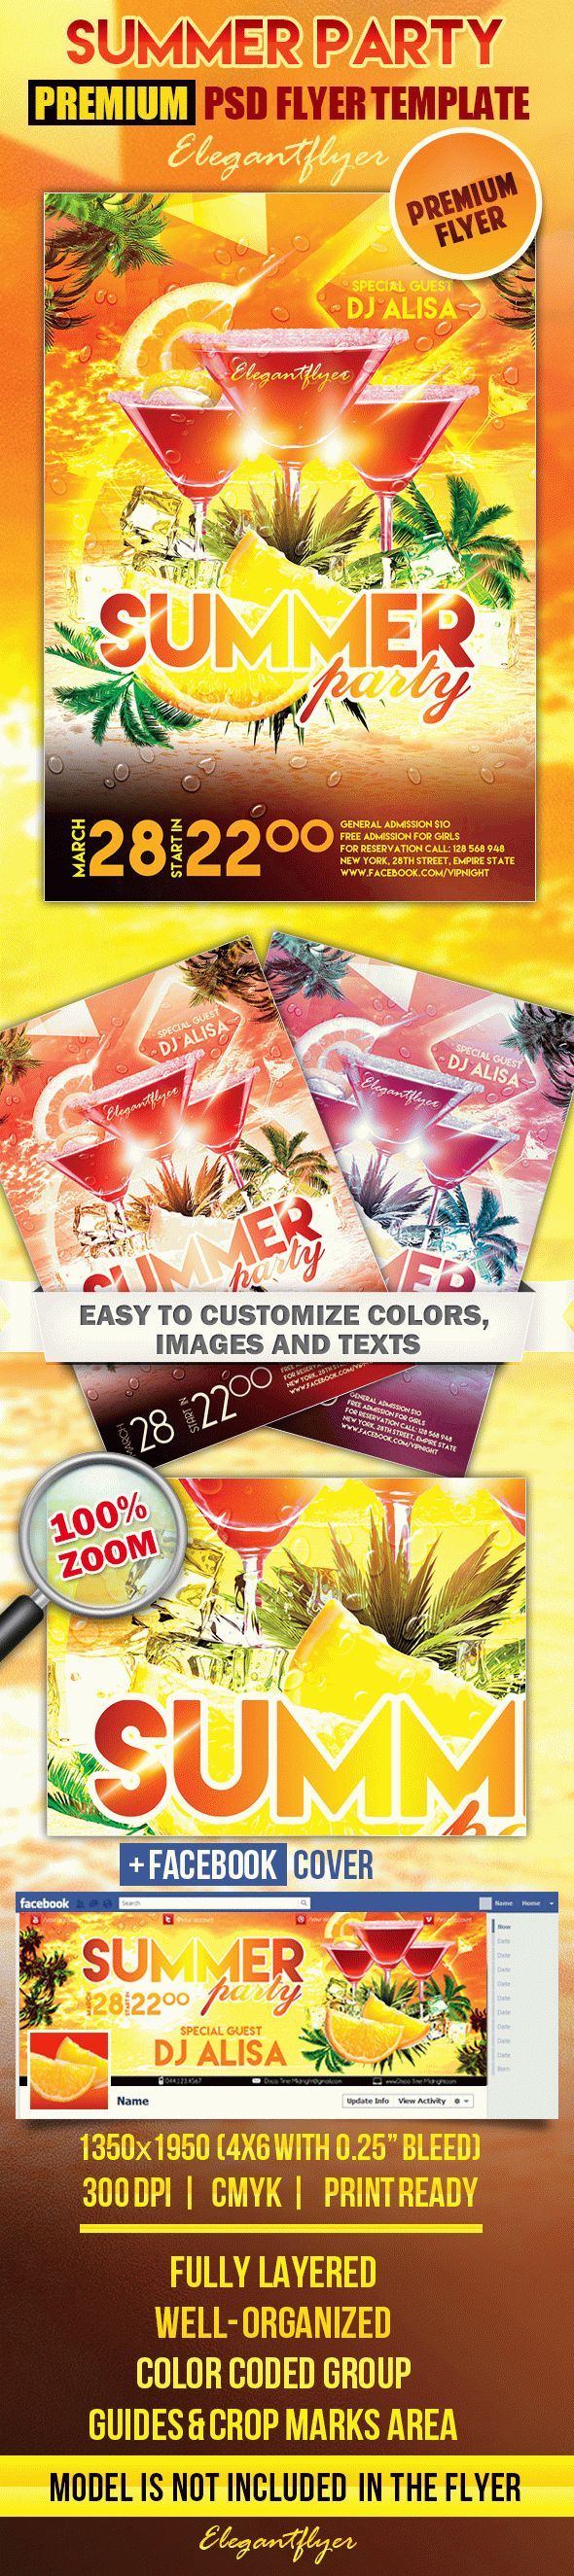 Summer Party 3 – PSD Flyer Templates